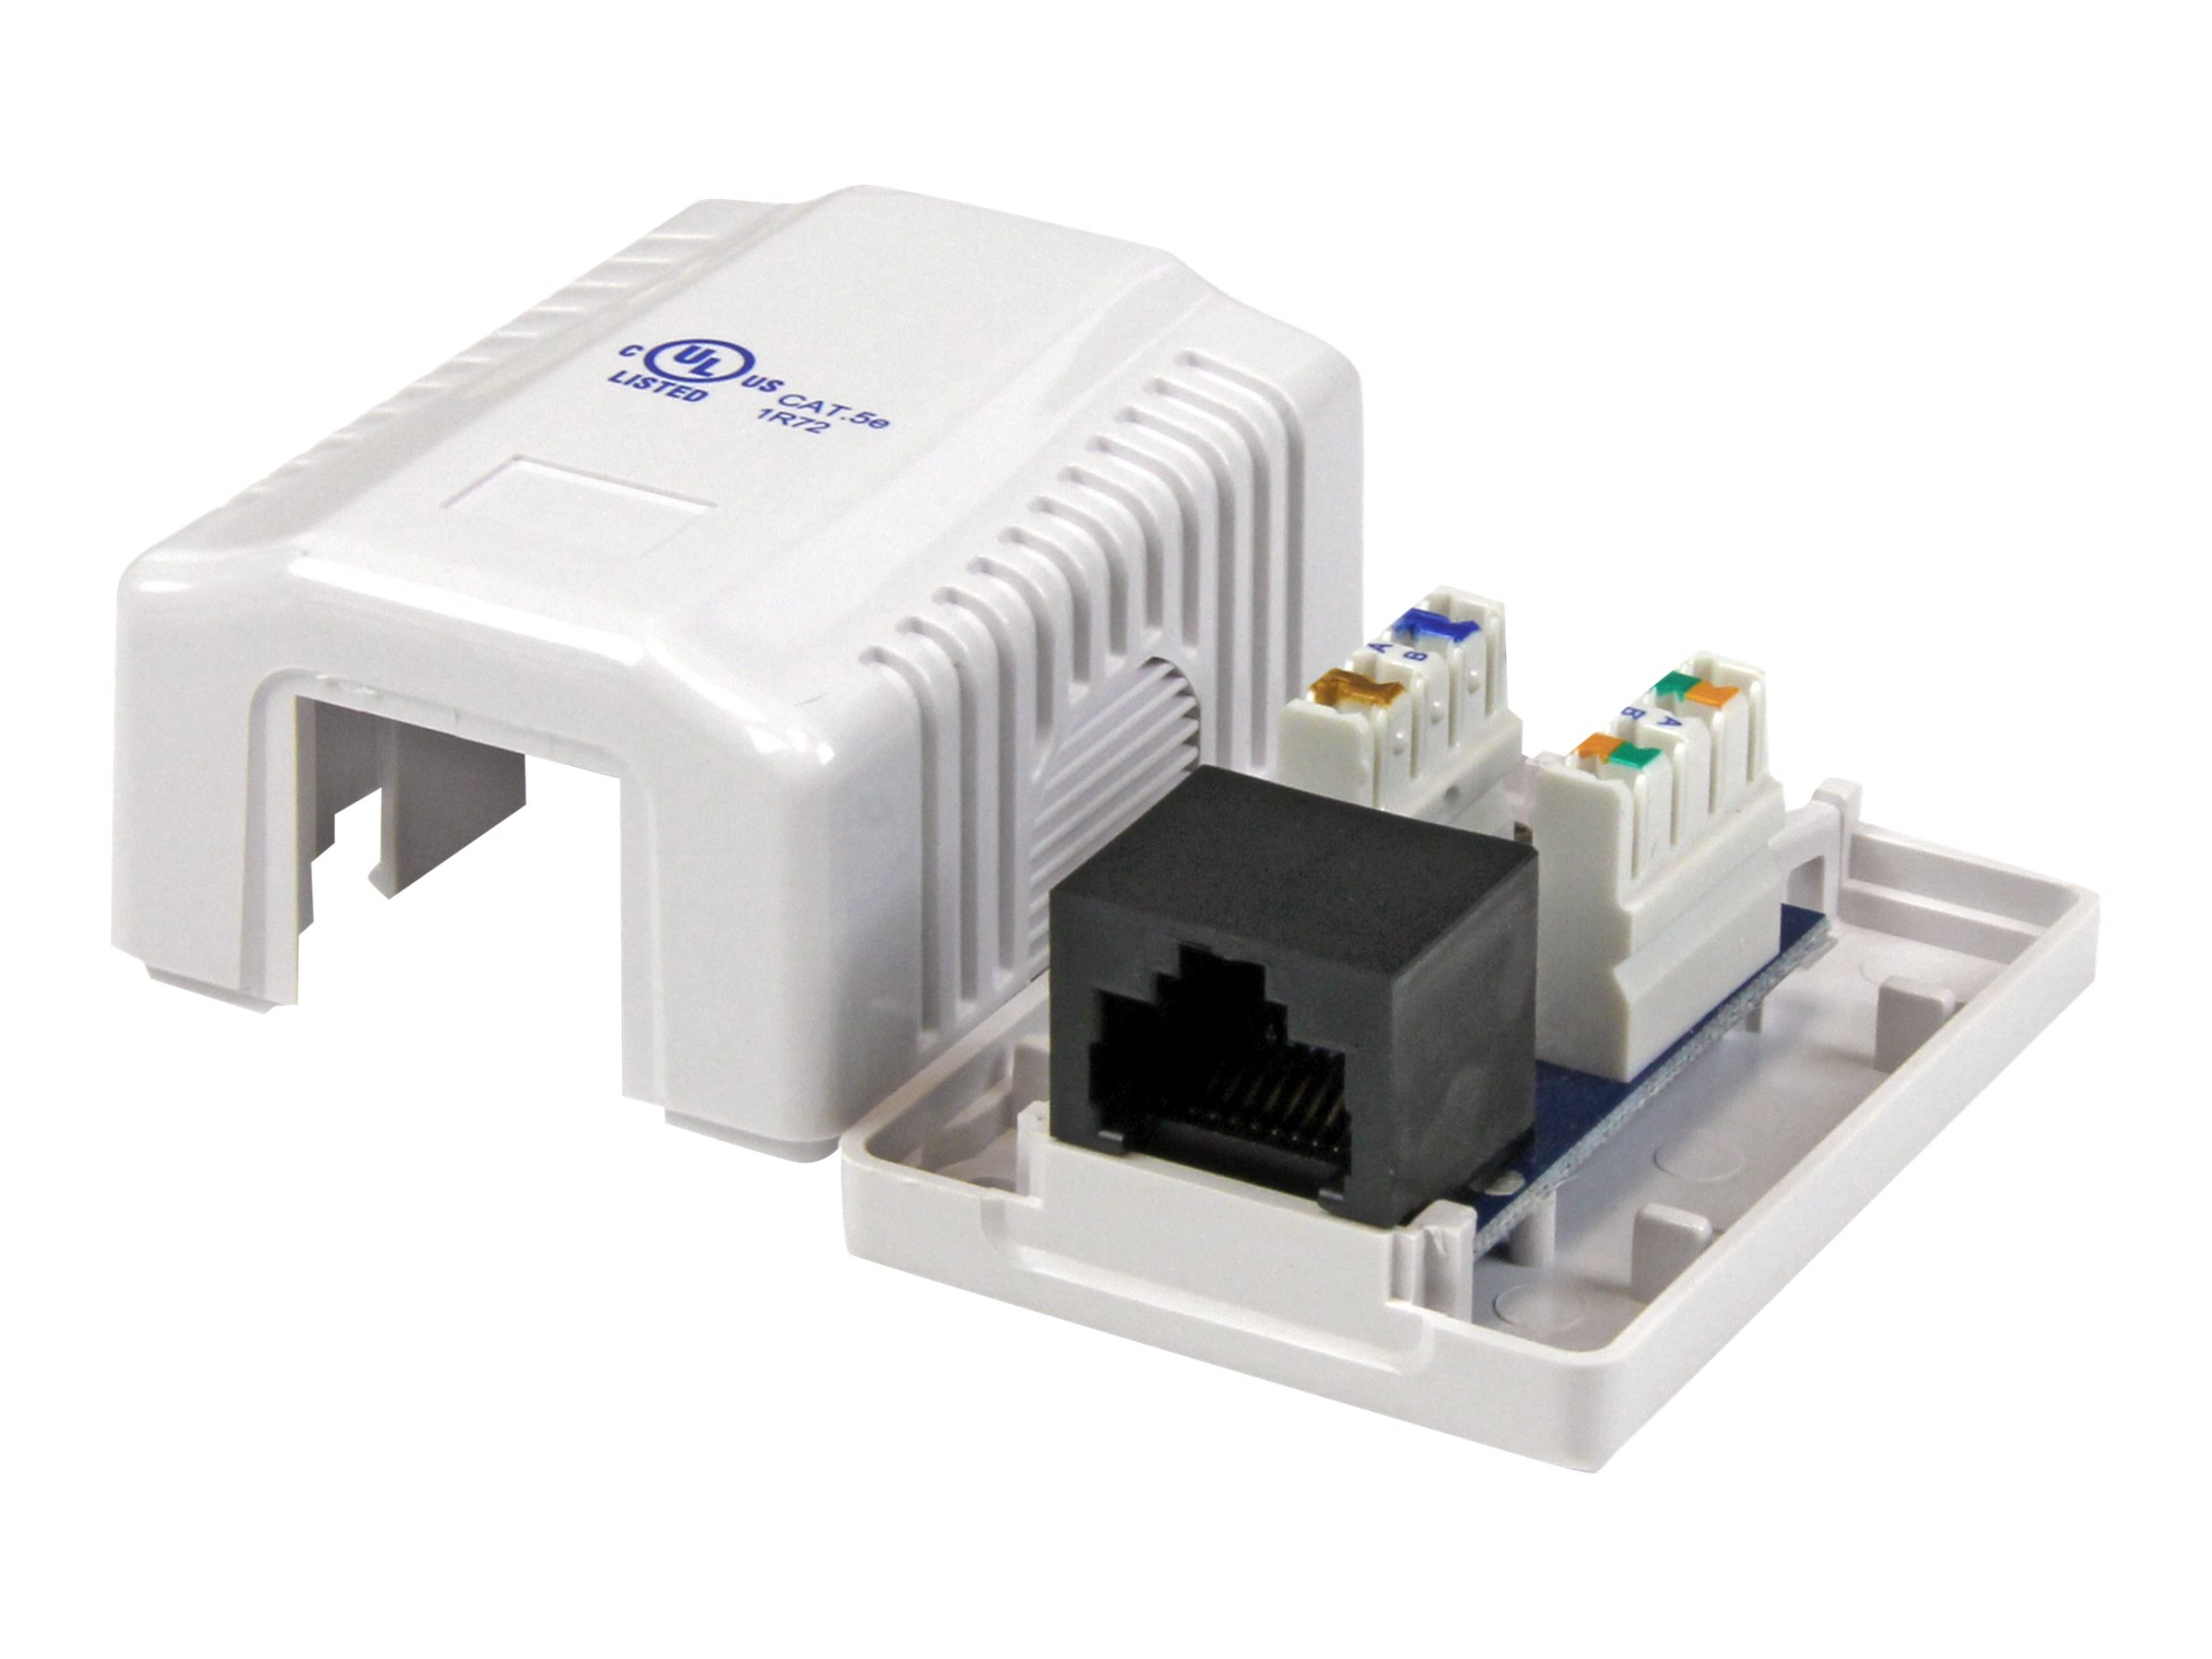 StarTech.com Single Cat5e RJ45 Wall Jack White with Keystone Jack - outlet